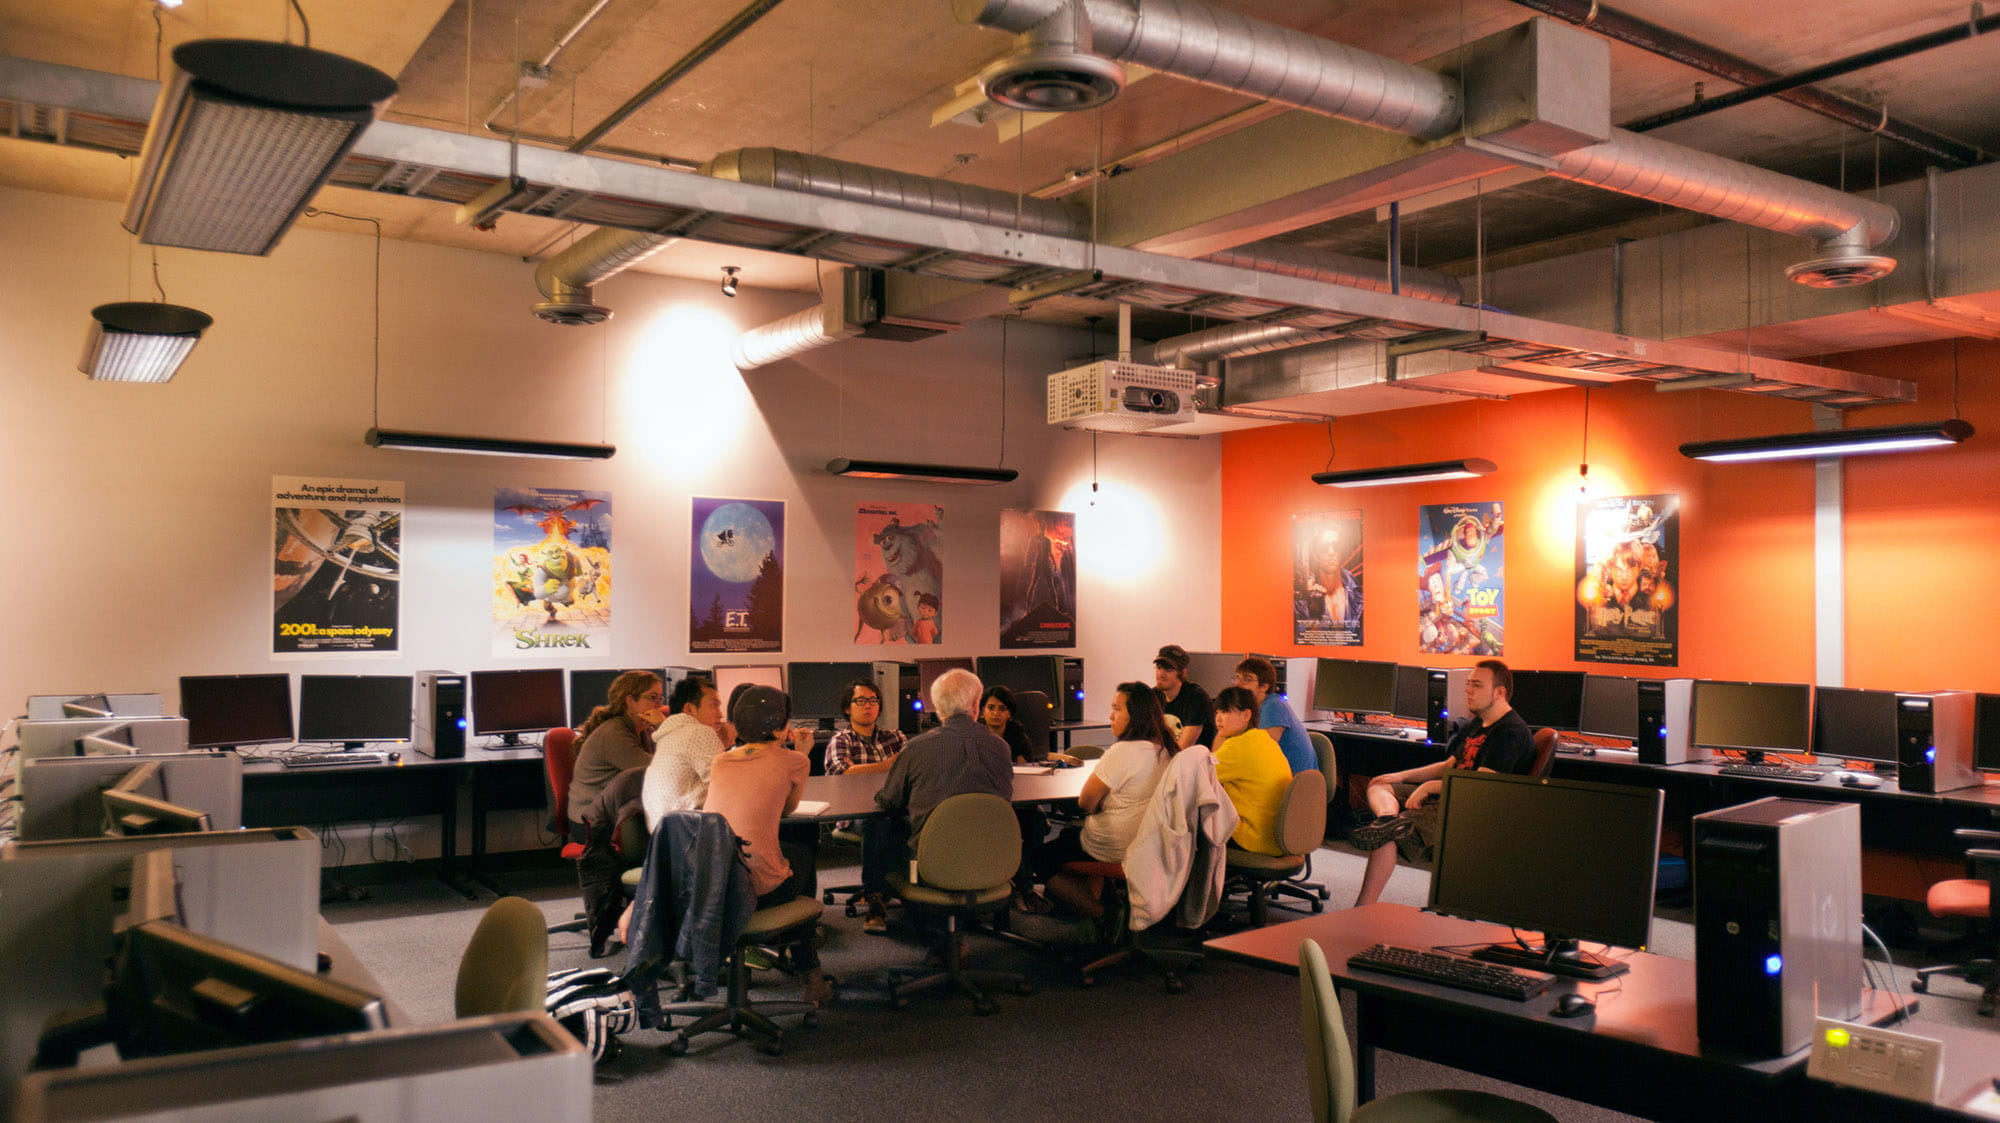 An instructor talking to a group of students in a room with lots of computers and posters of animated films on the walls